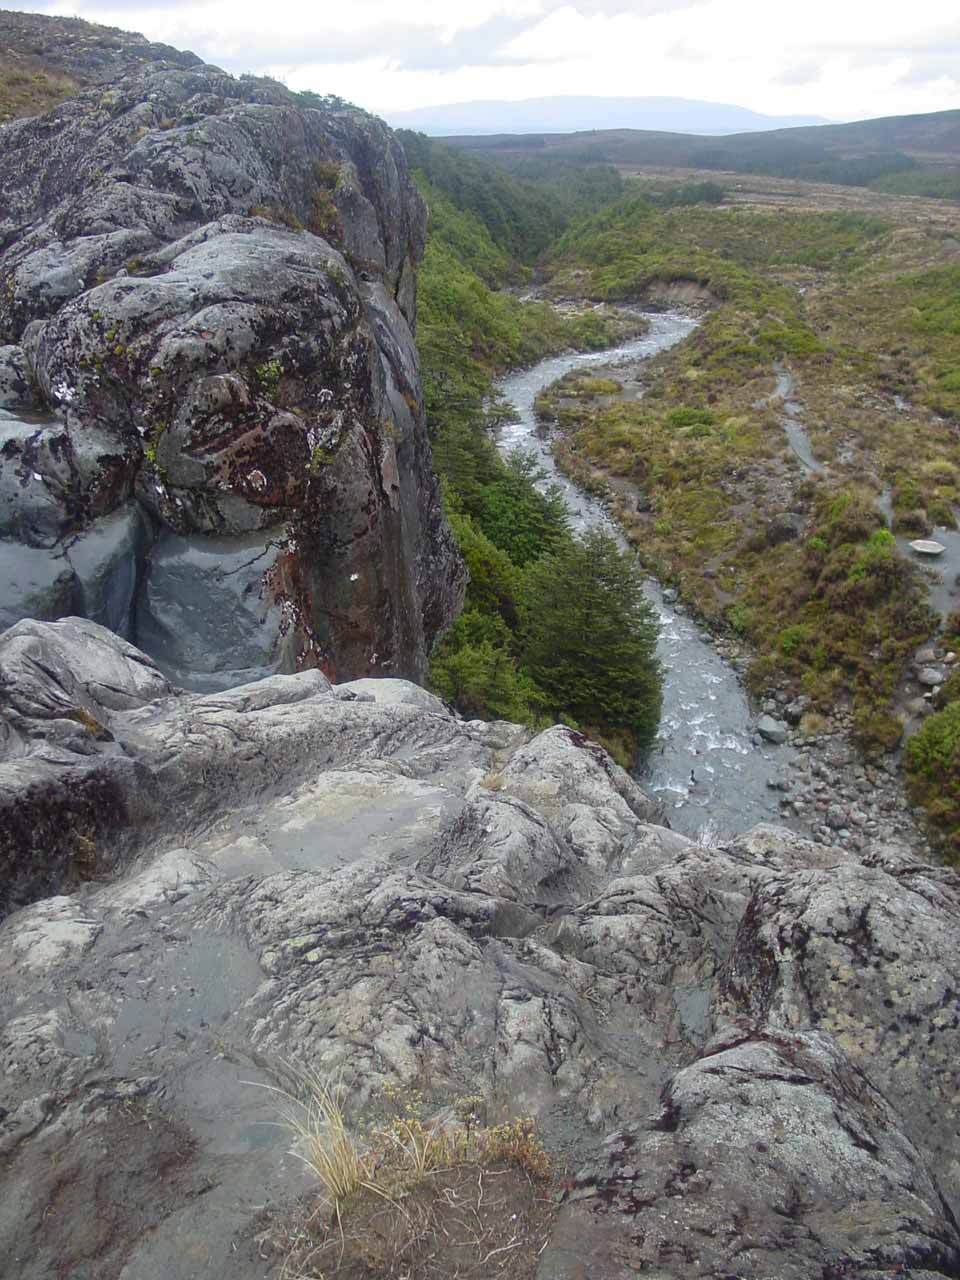 Looking over the top of Taranaki Falls towards the meandering Wairere Stream making its way along the fringes of bush on one side and open terrain on the other